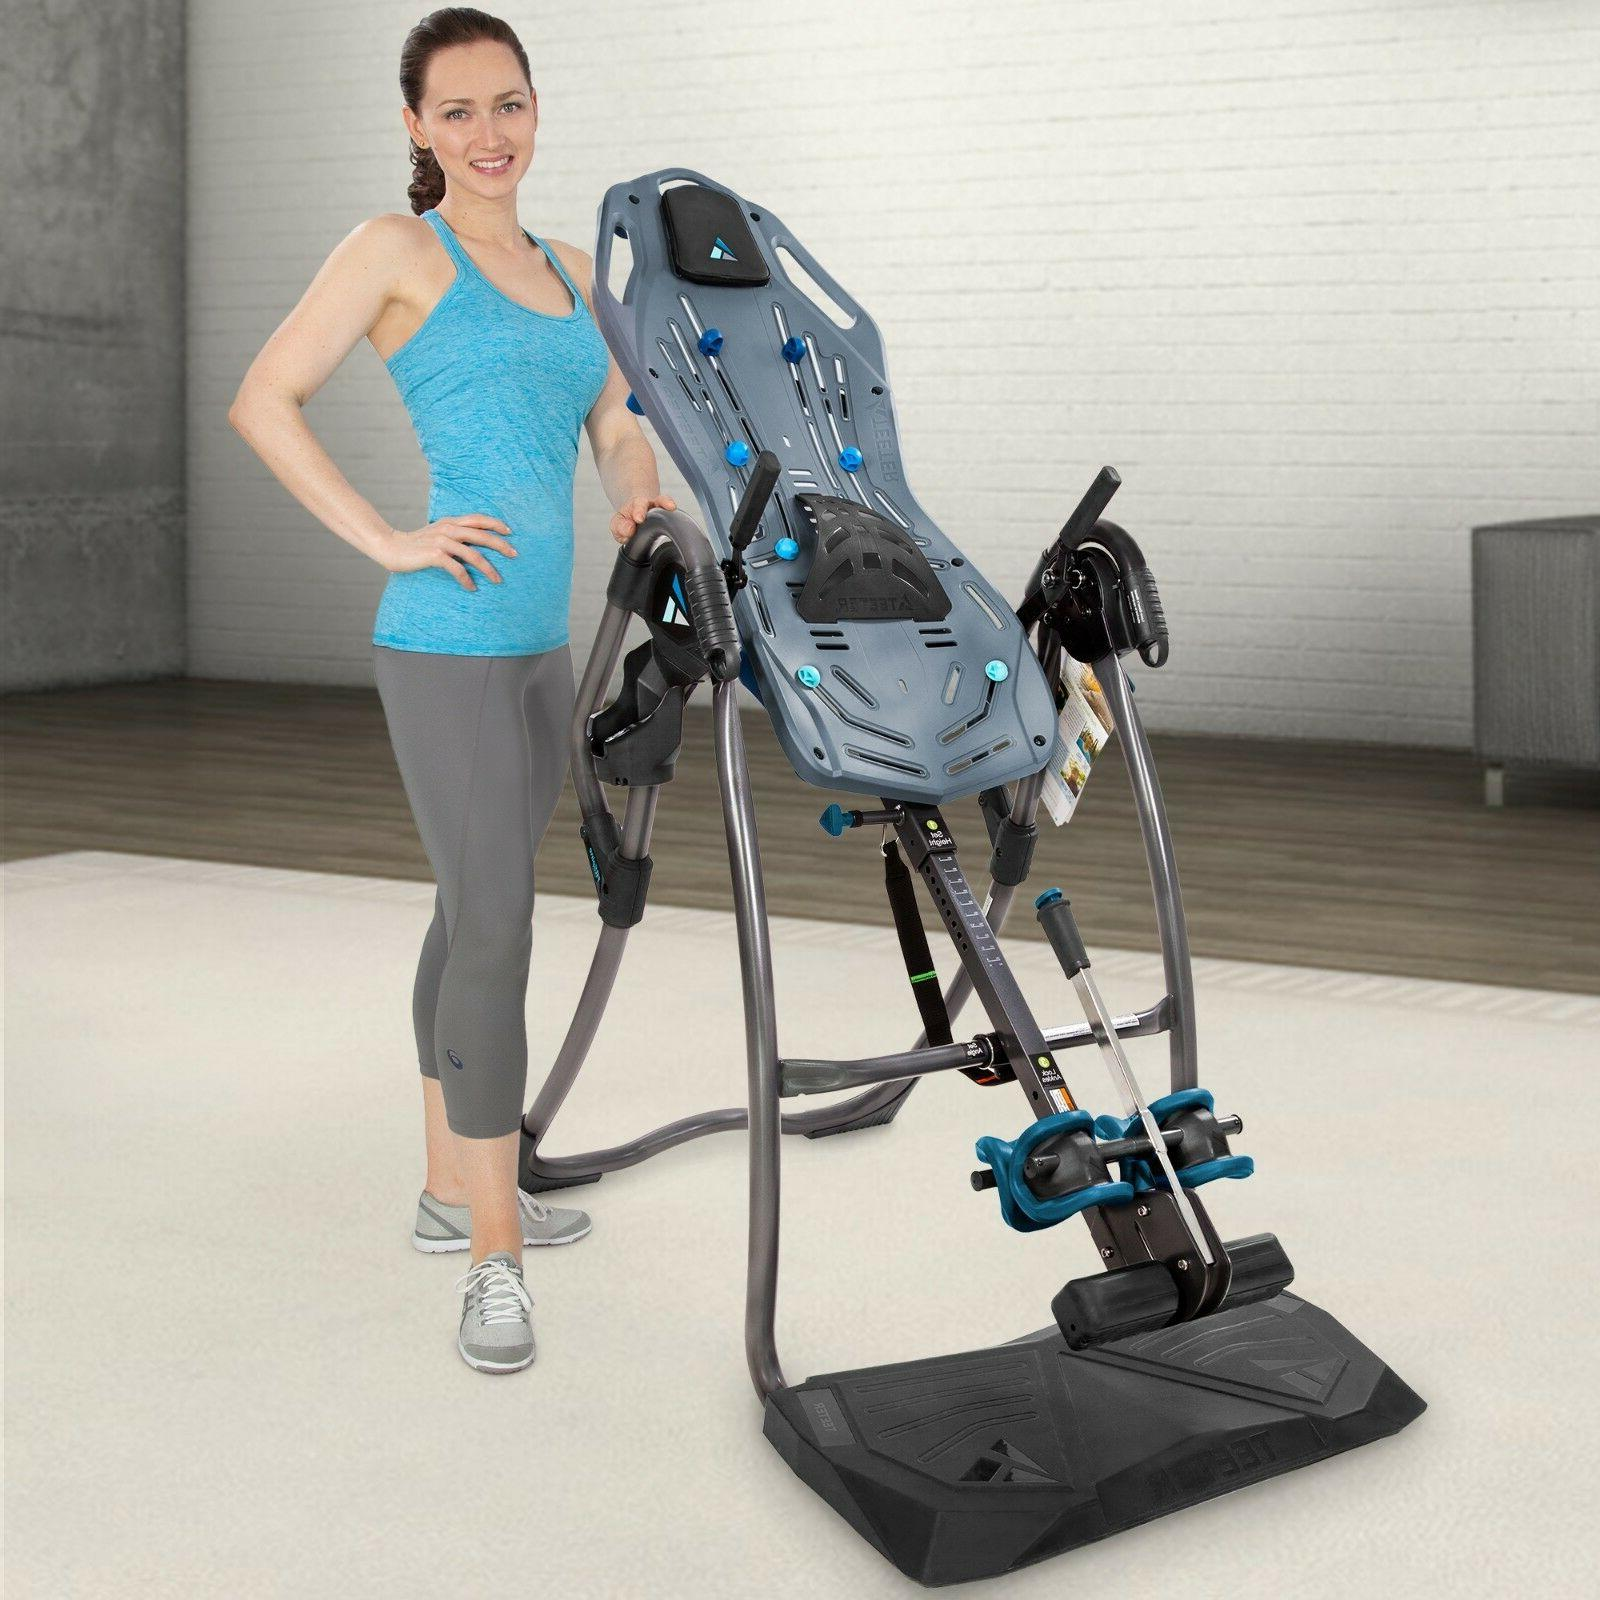 SALE!! Teeter FitSpine LX9 - Cert Refurb- LX94- INCLUDED: Ba